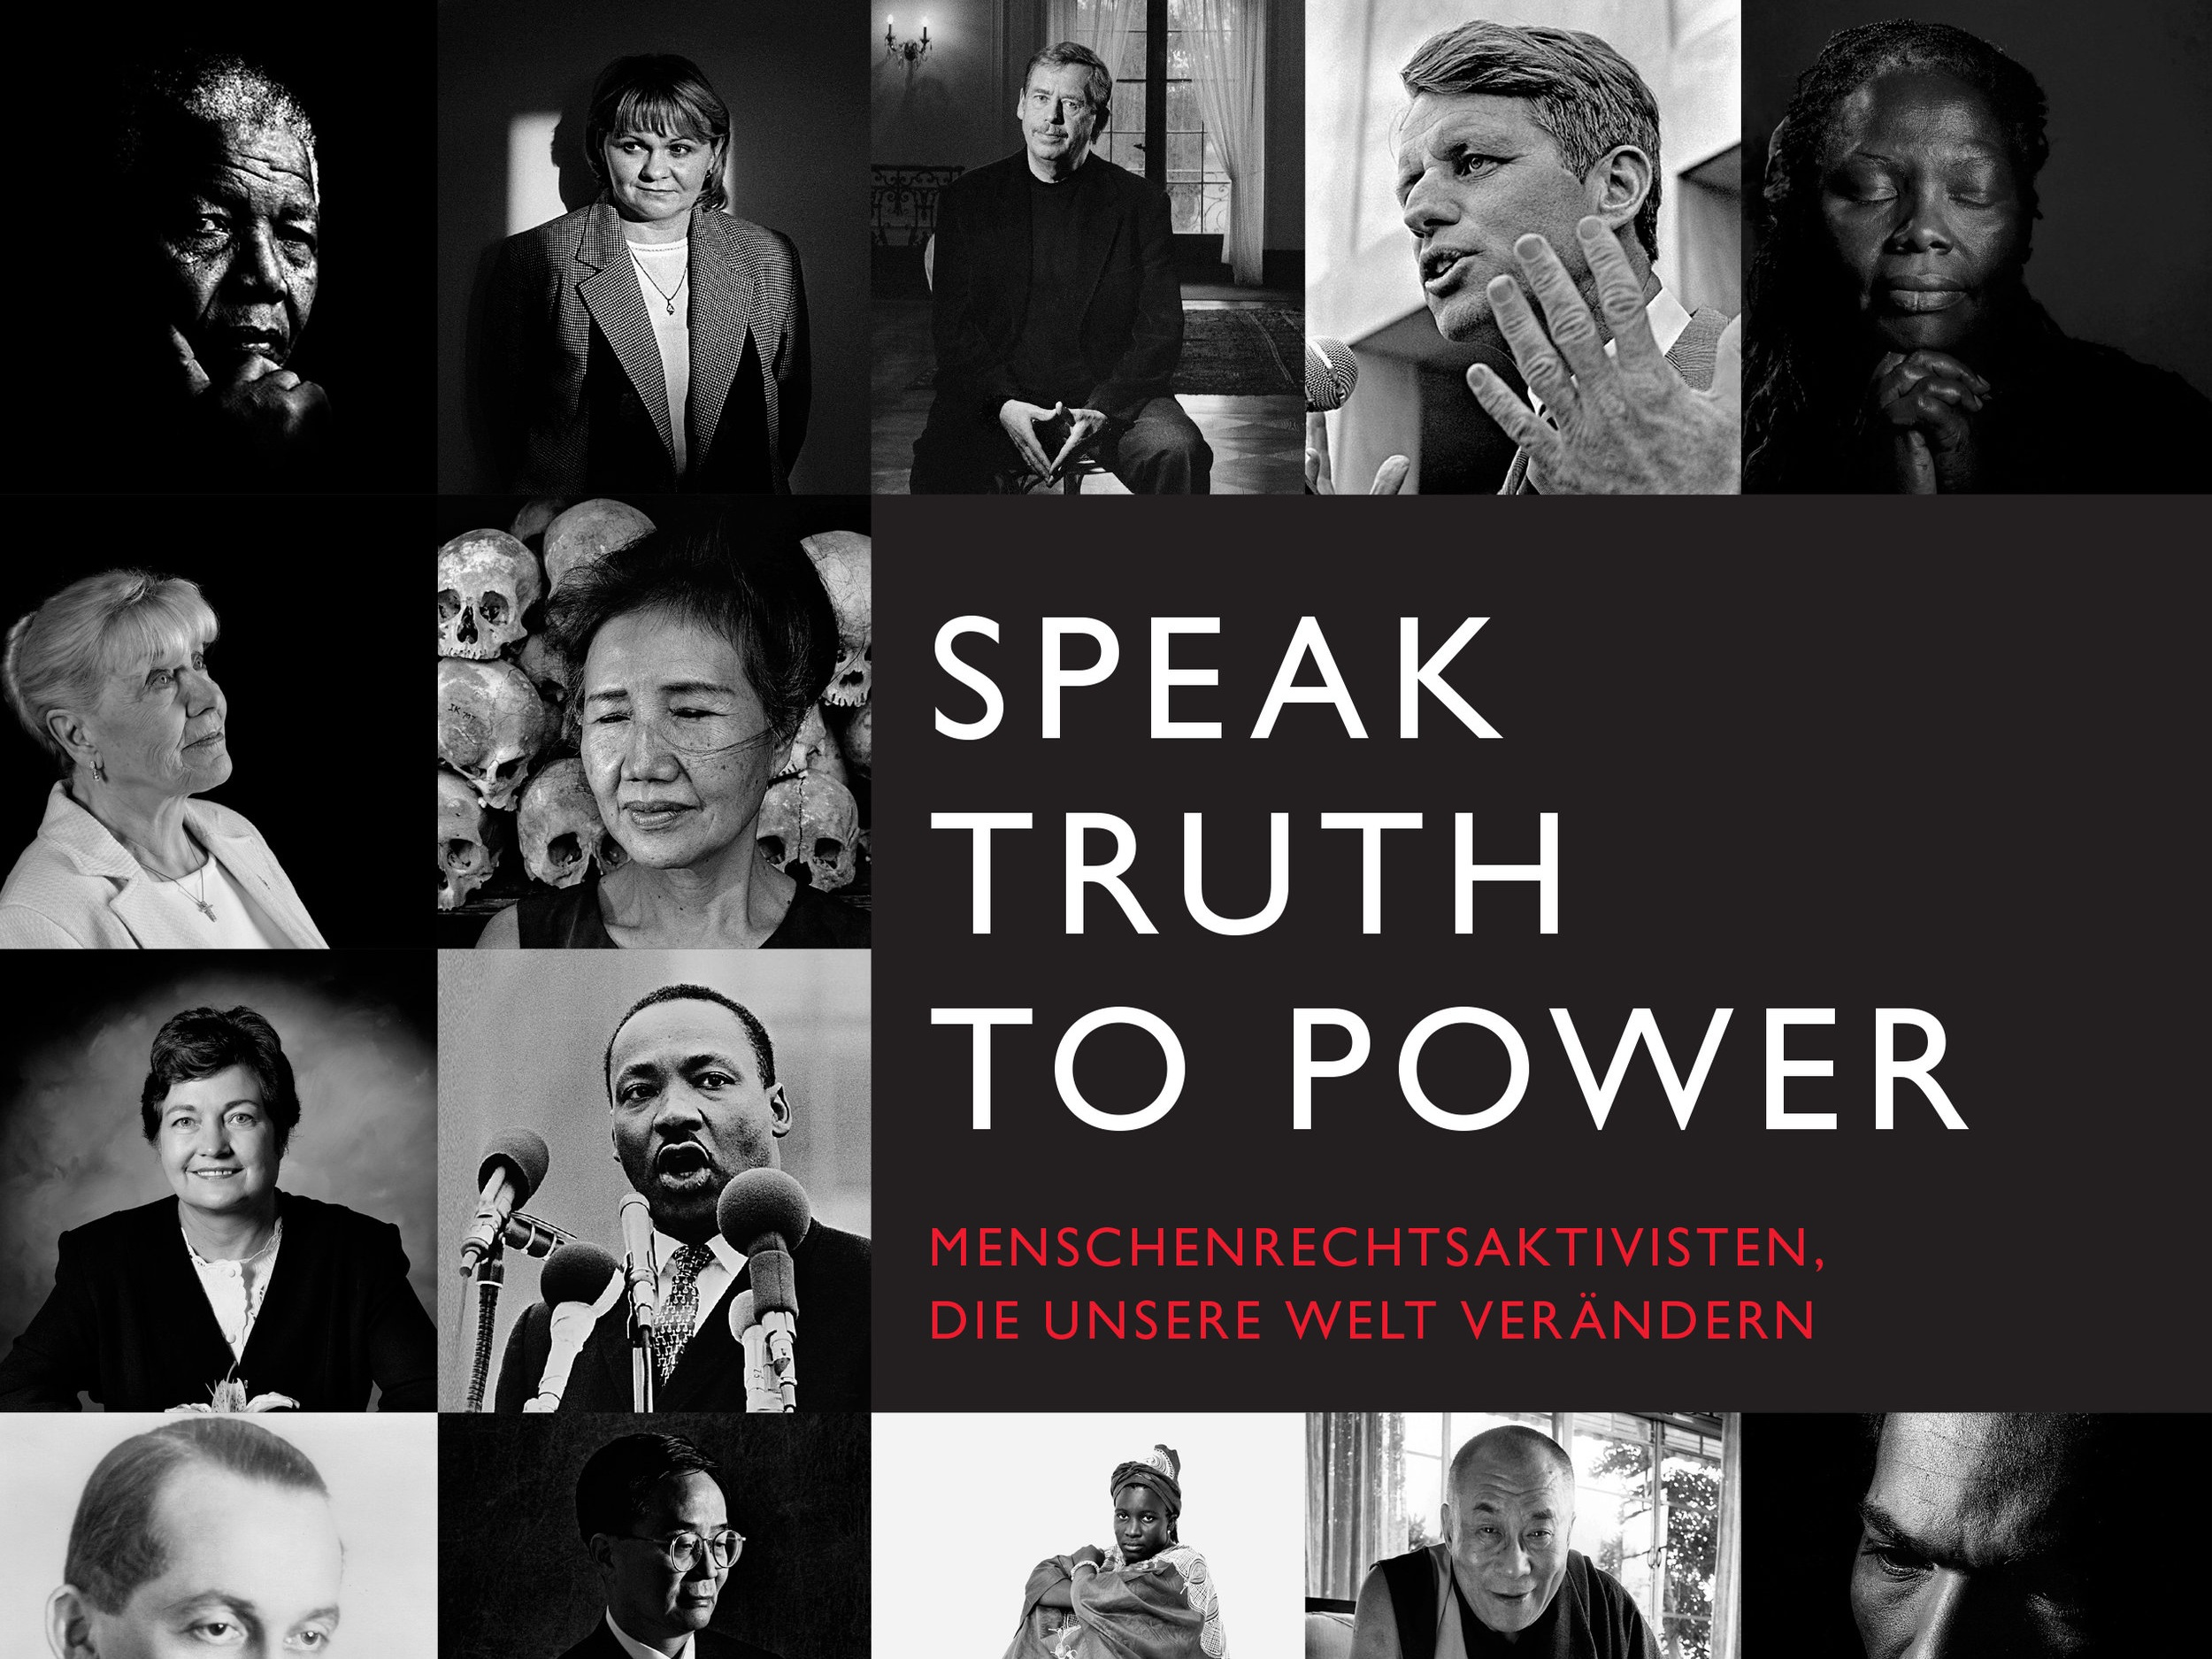 Book: Speak Truth to Power - Developed alongside the Competence Center for Human Rights at the University of Zurich and tailored to the Swiss education landscape.